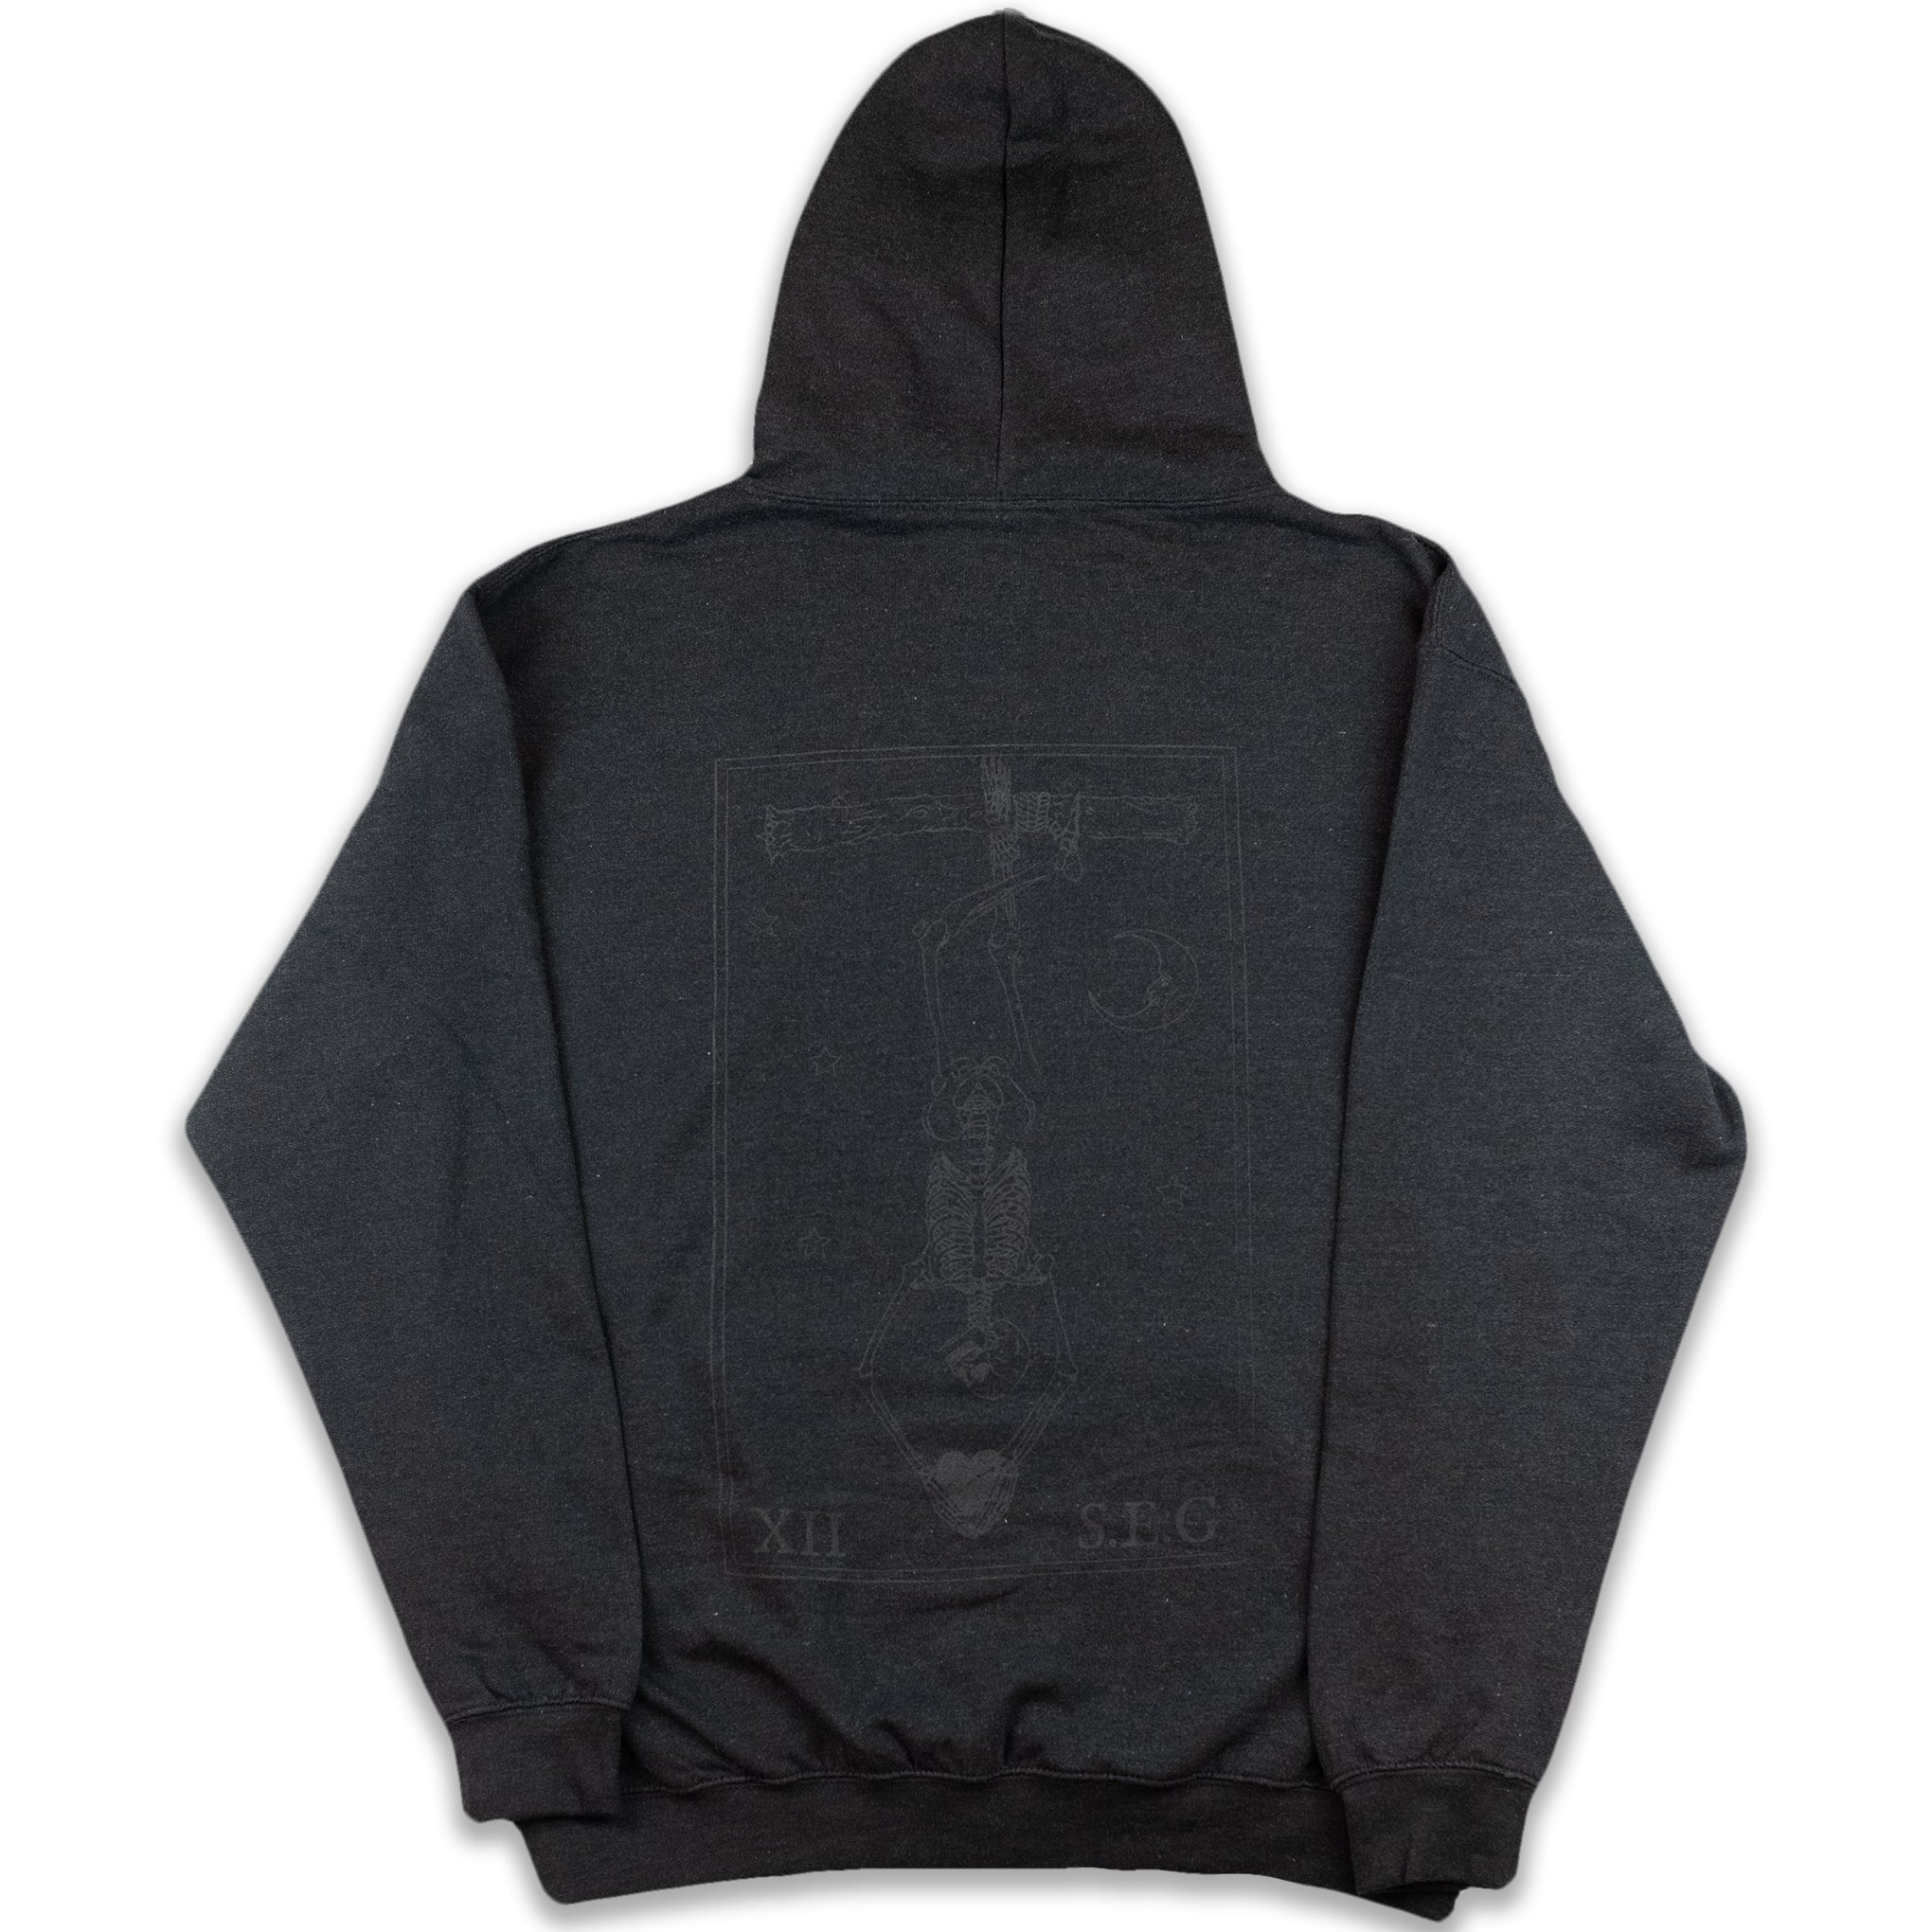 Down Low Hanged Man Hoodie